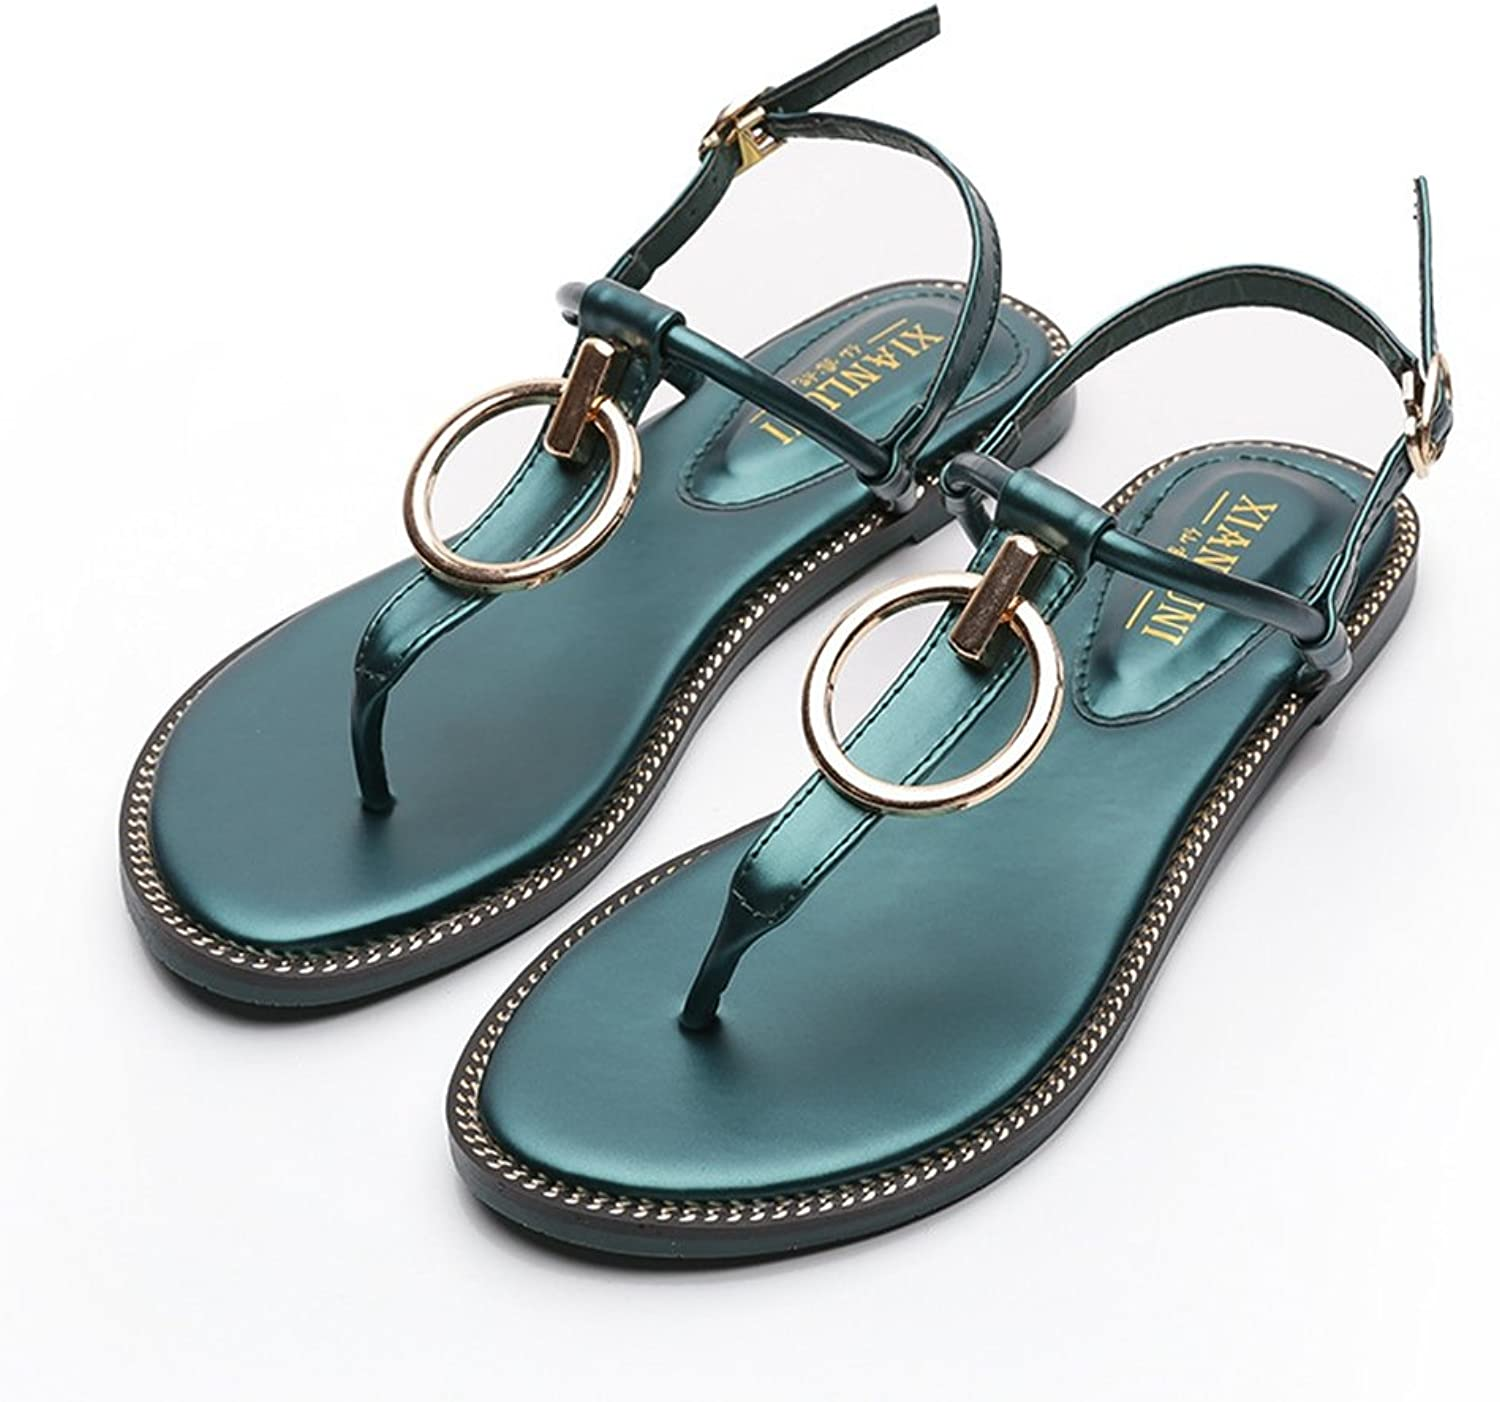 CYBLING Womens T-Strap Thong Ankle Strap Summer Beach Dress Flat Sandals shoes